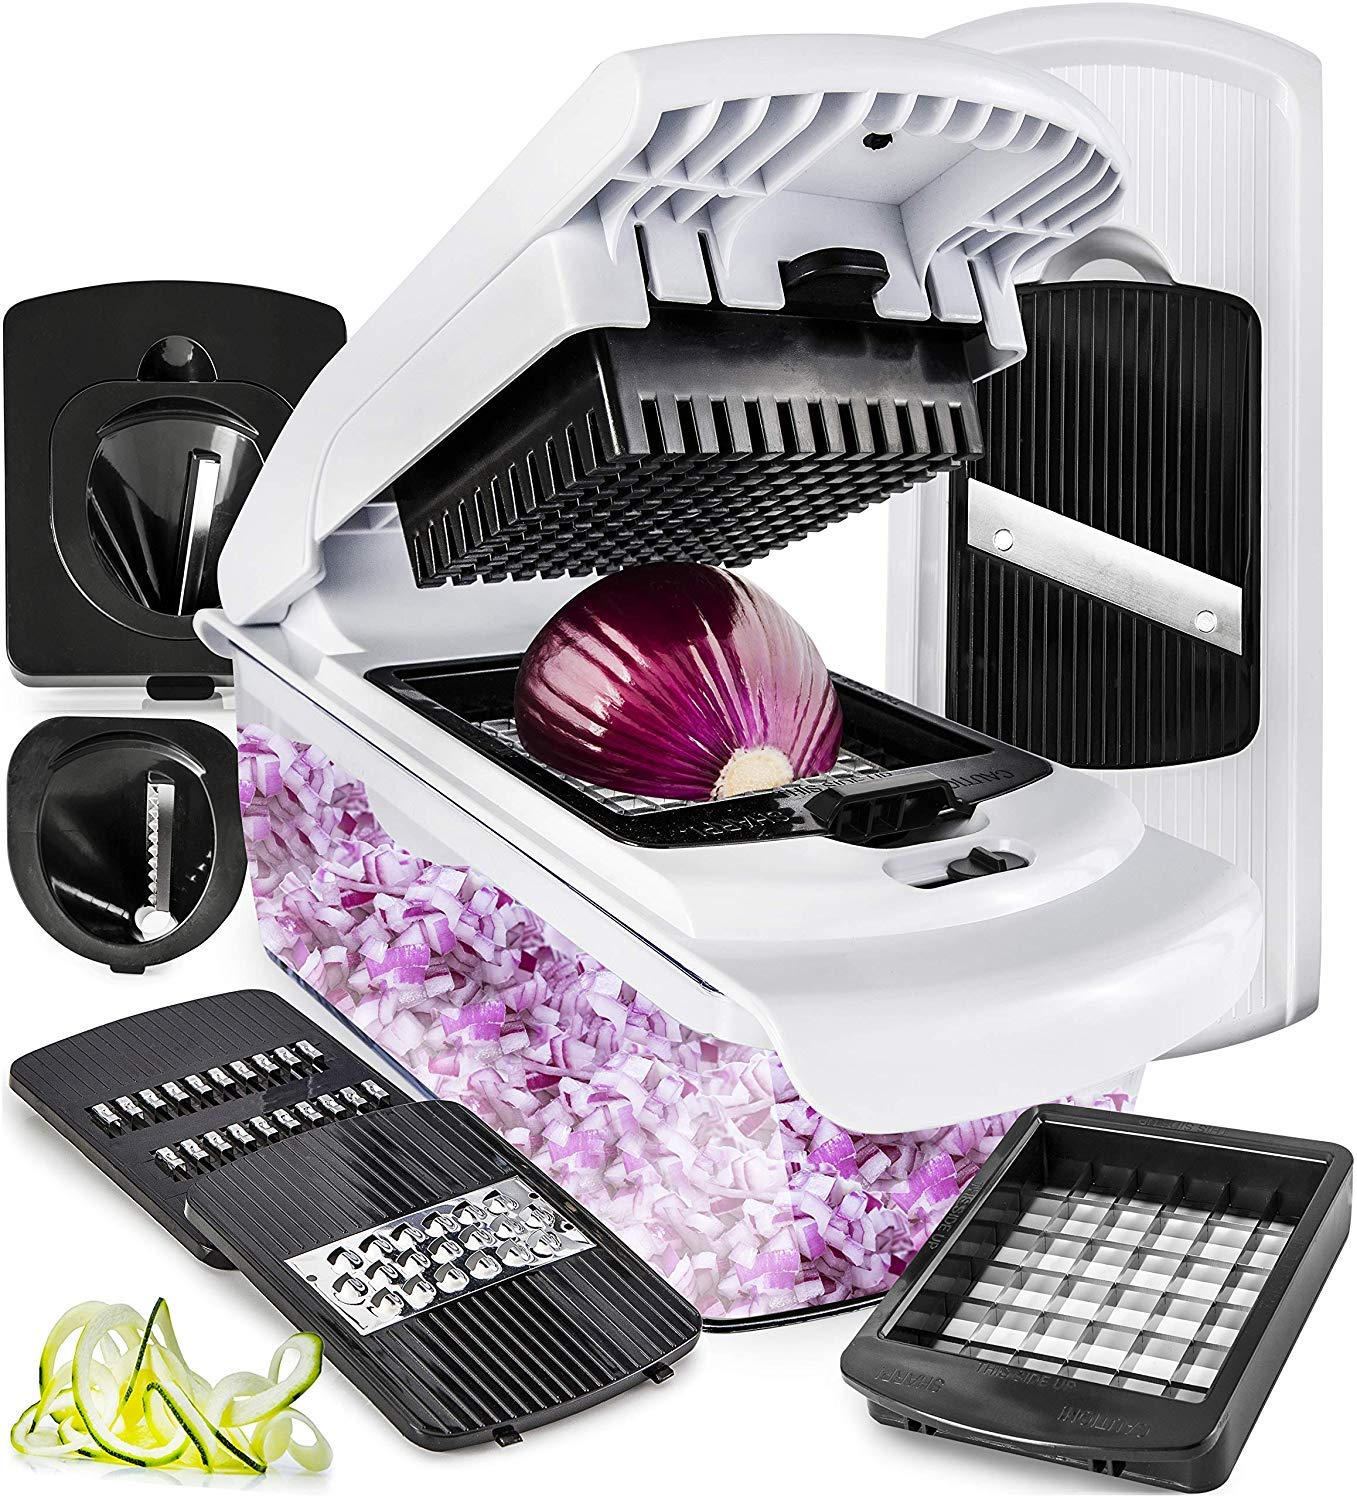 Fullstar Vegetable Chopper Mandoline Slicer Dicer - Onion Chopper - Vegetable Dicer Food Chopper Dicer Pro - Food Choppers and Dicers - Spiralizer Vegetable Cutter - Spiralizer Vegetable Slicer by Fullstar